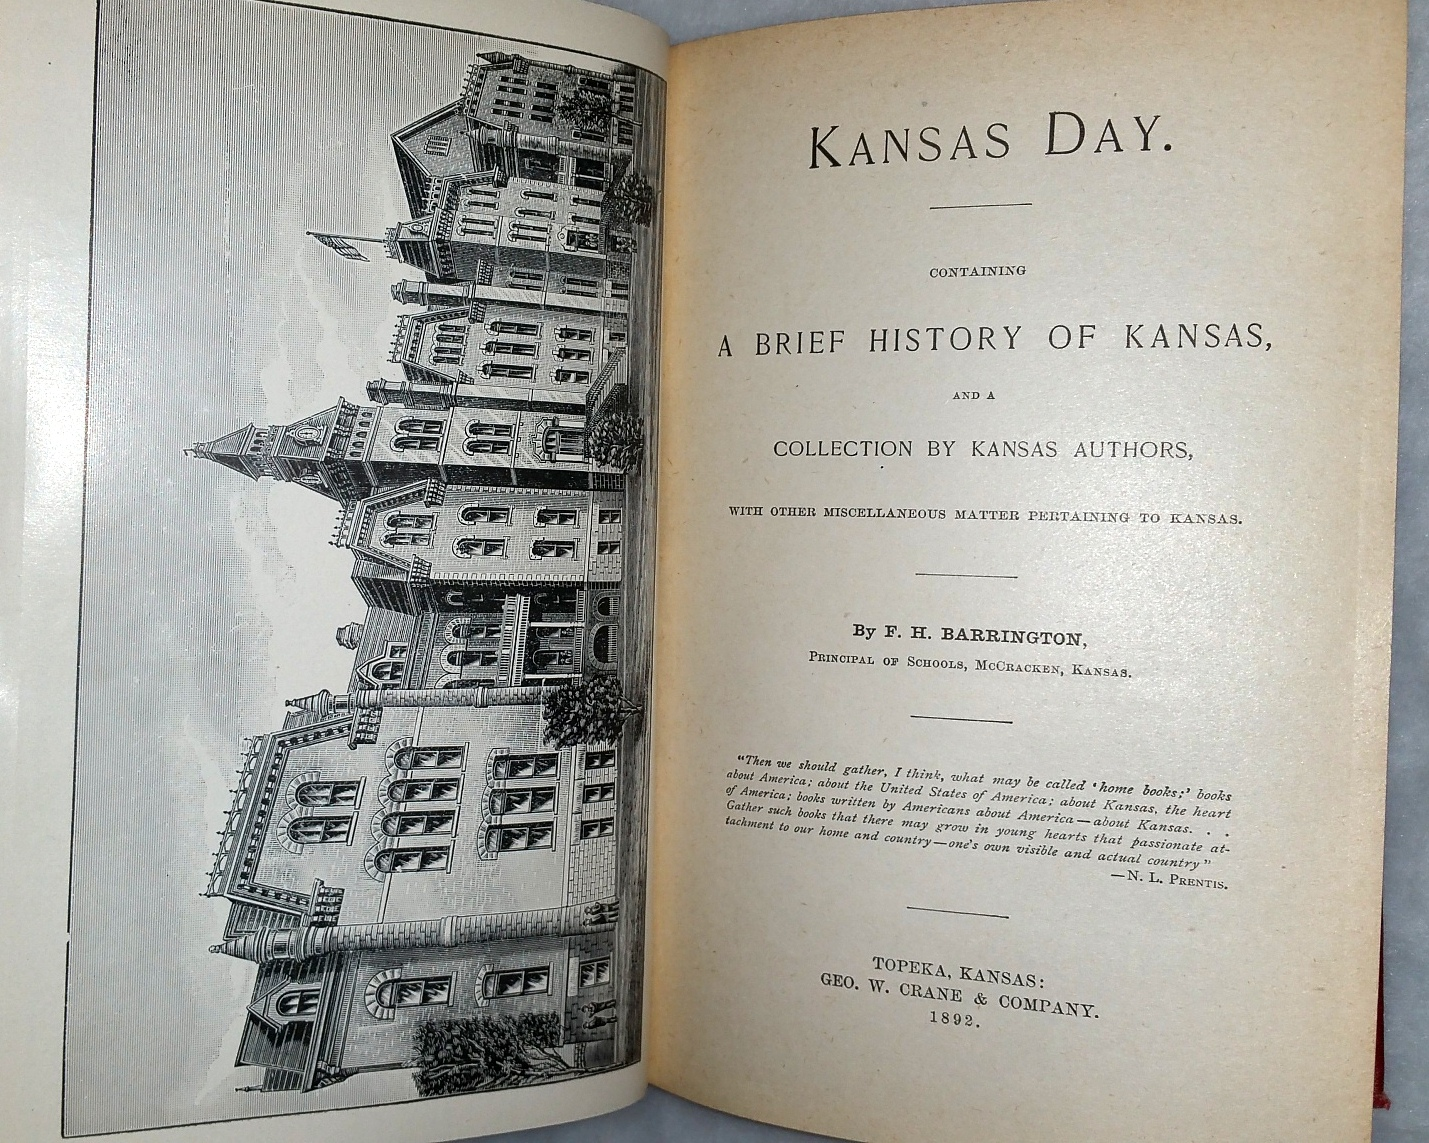 Image for Kansas Day.  Containing A Brief History of Kansas and a Collection By Kansas Authors, with Other Miscellaneous Matter Pertaining to Kansas